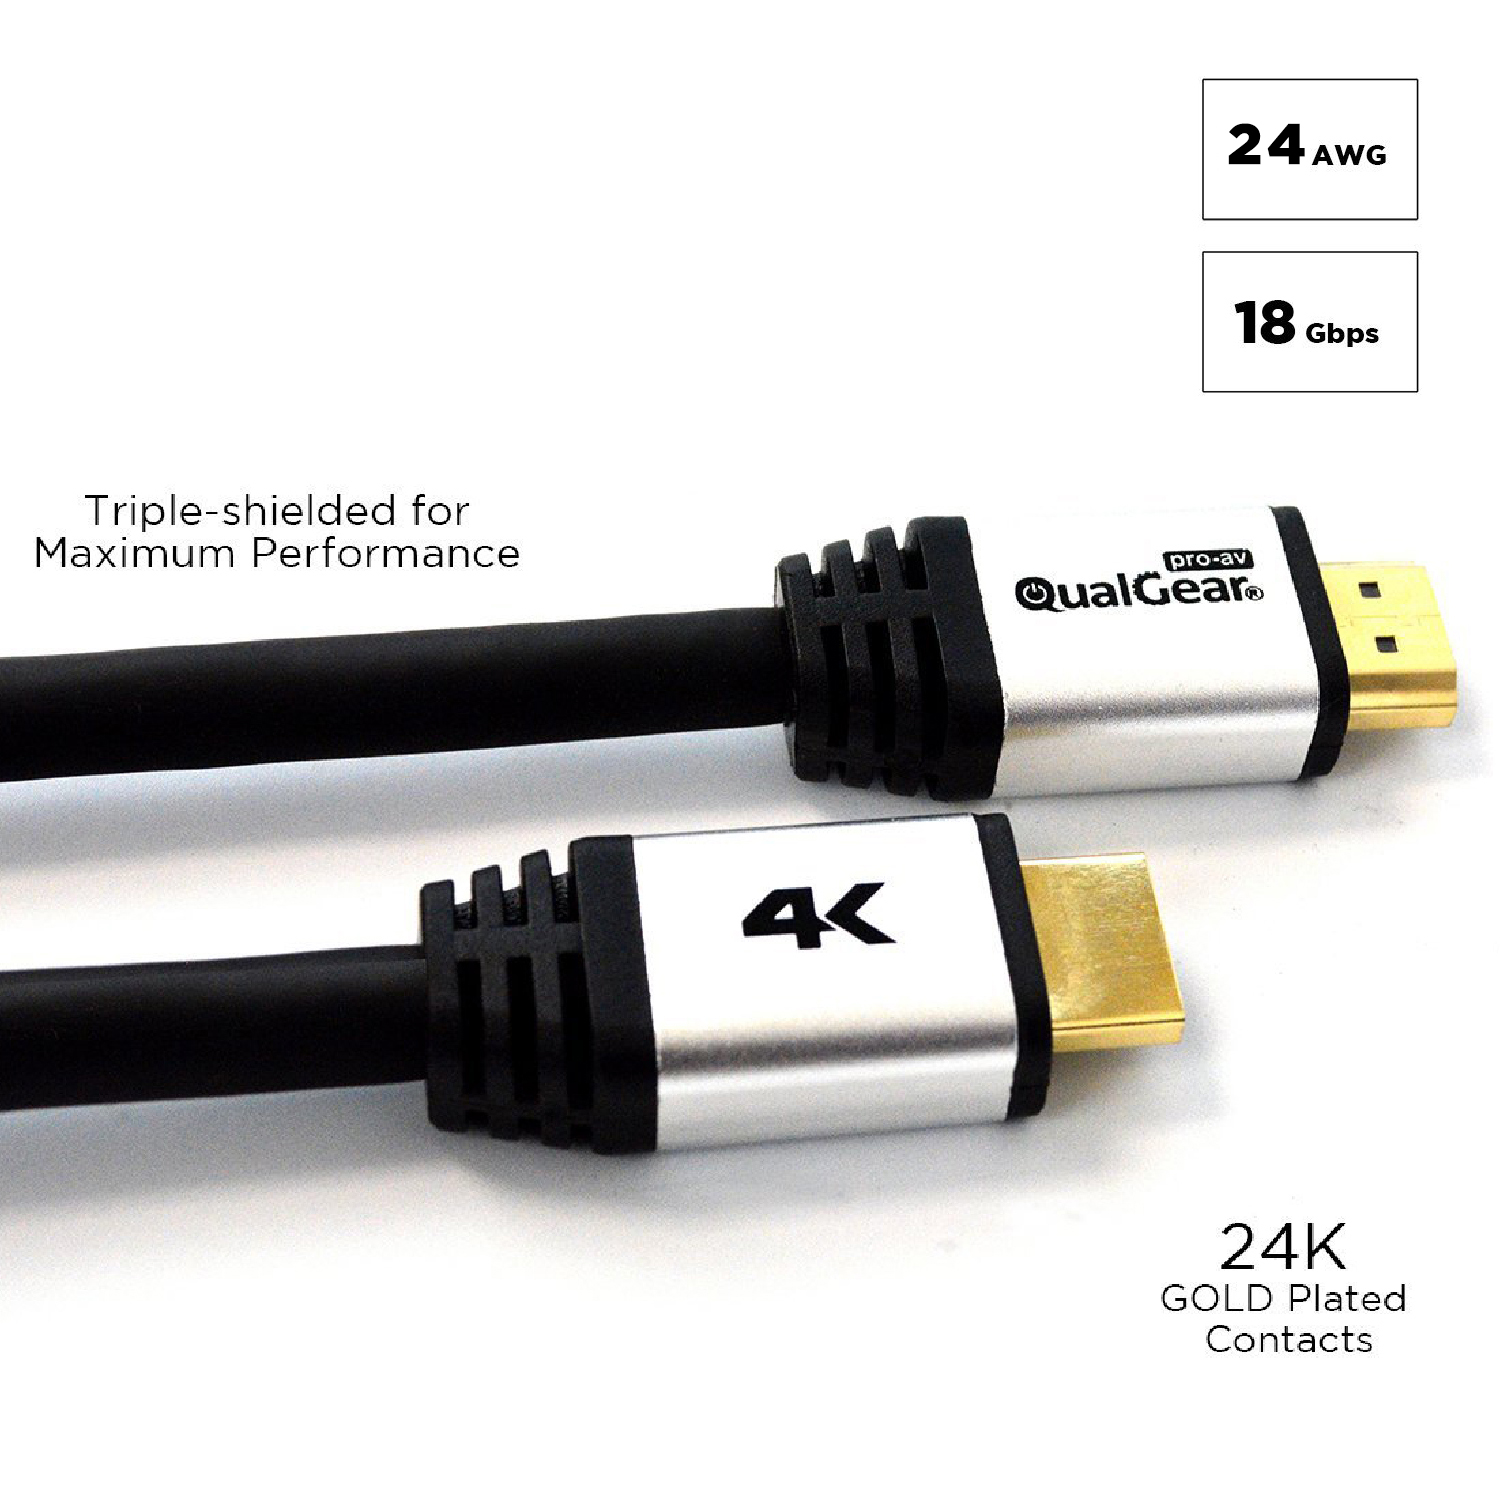 QualGear 60 Ft High-Speed Long HDMI 2.0 Cable with 24K Gold Plated Contacts, Supports 4K Ultra HD, 3D, 18 Gbps, Audio Return Channel,CL3 Rated for In-Wall Use (QG-CBL-HD20-60FT)